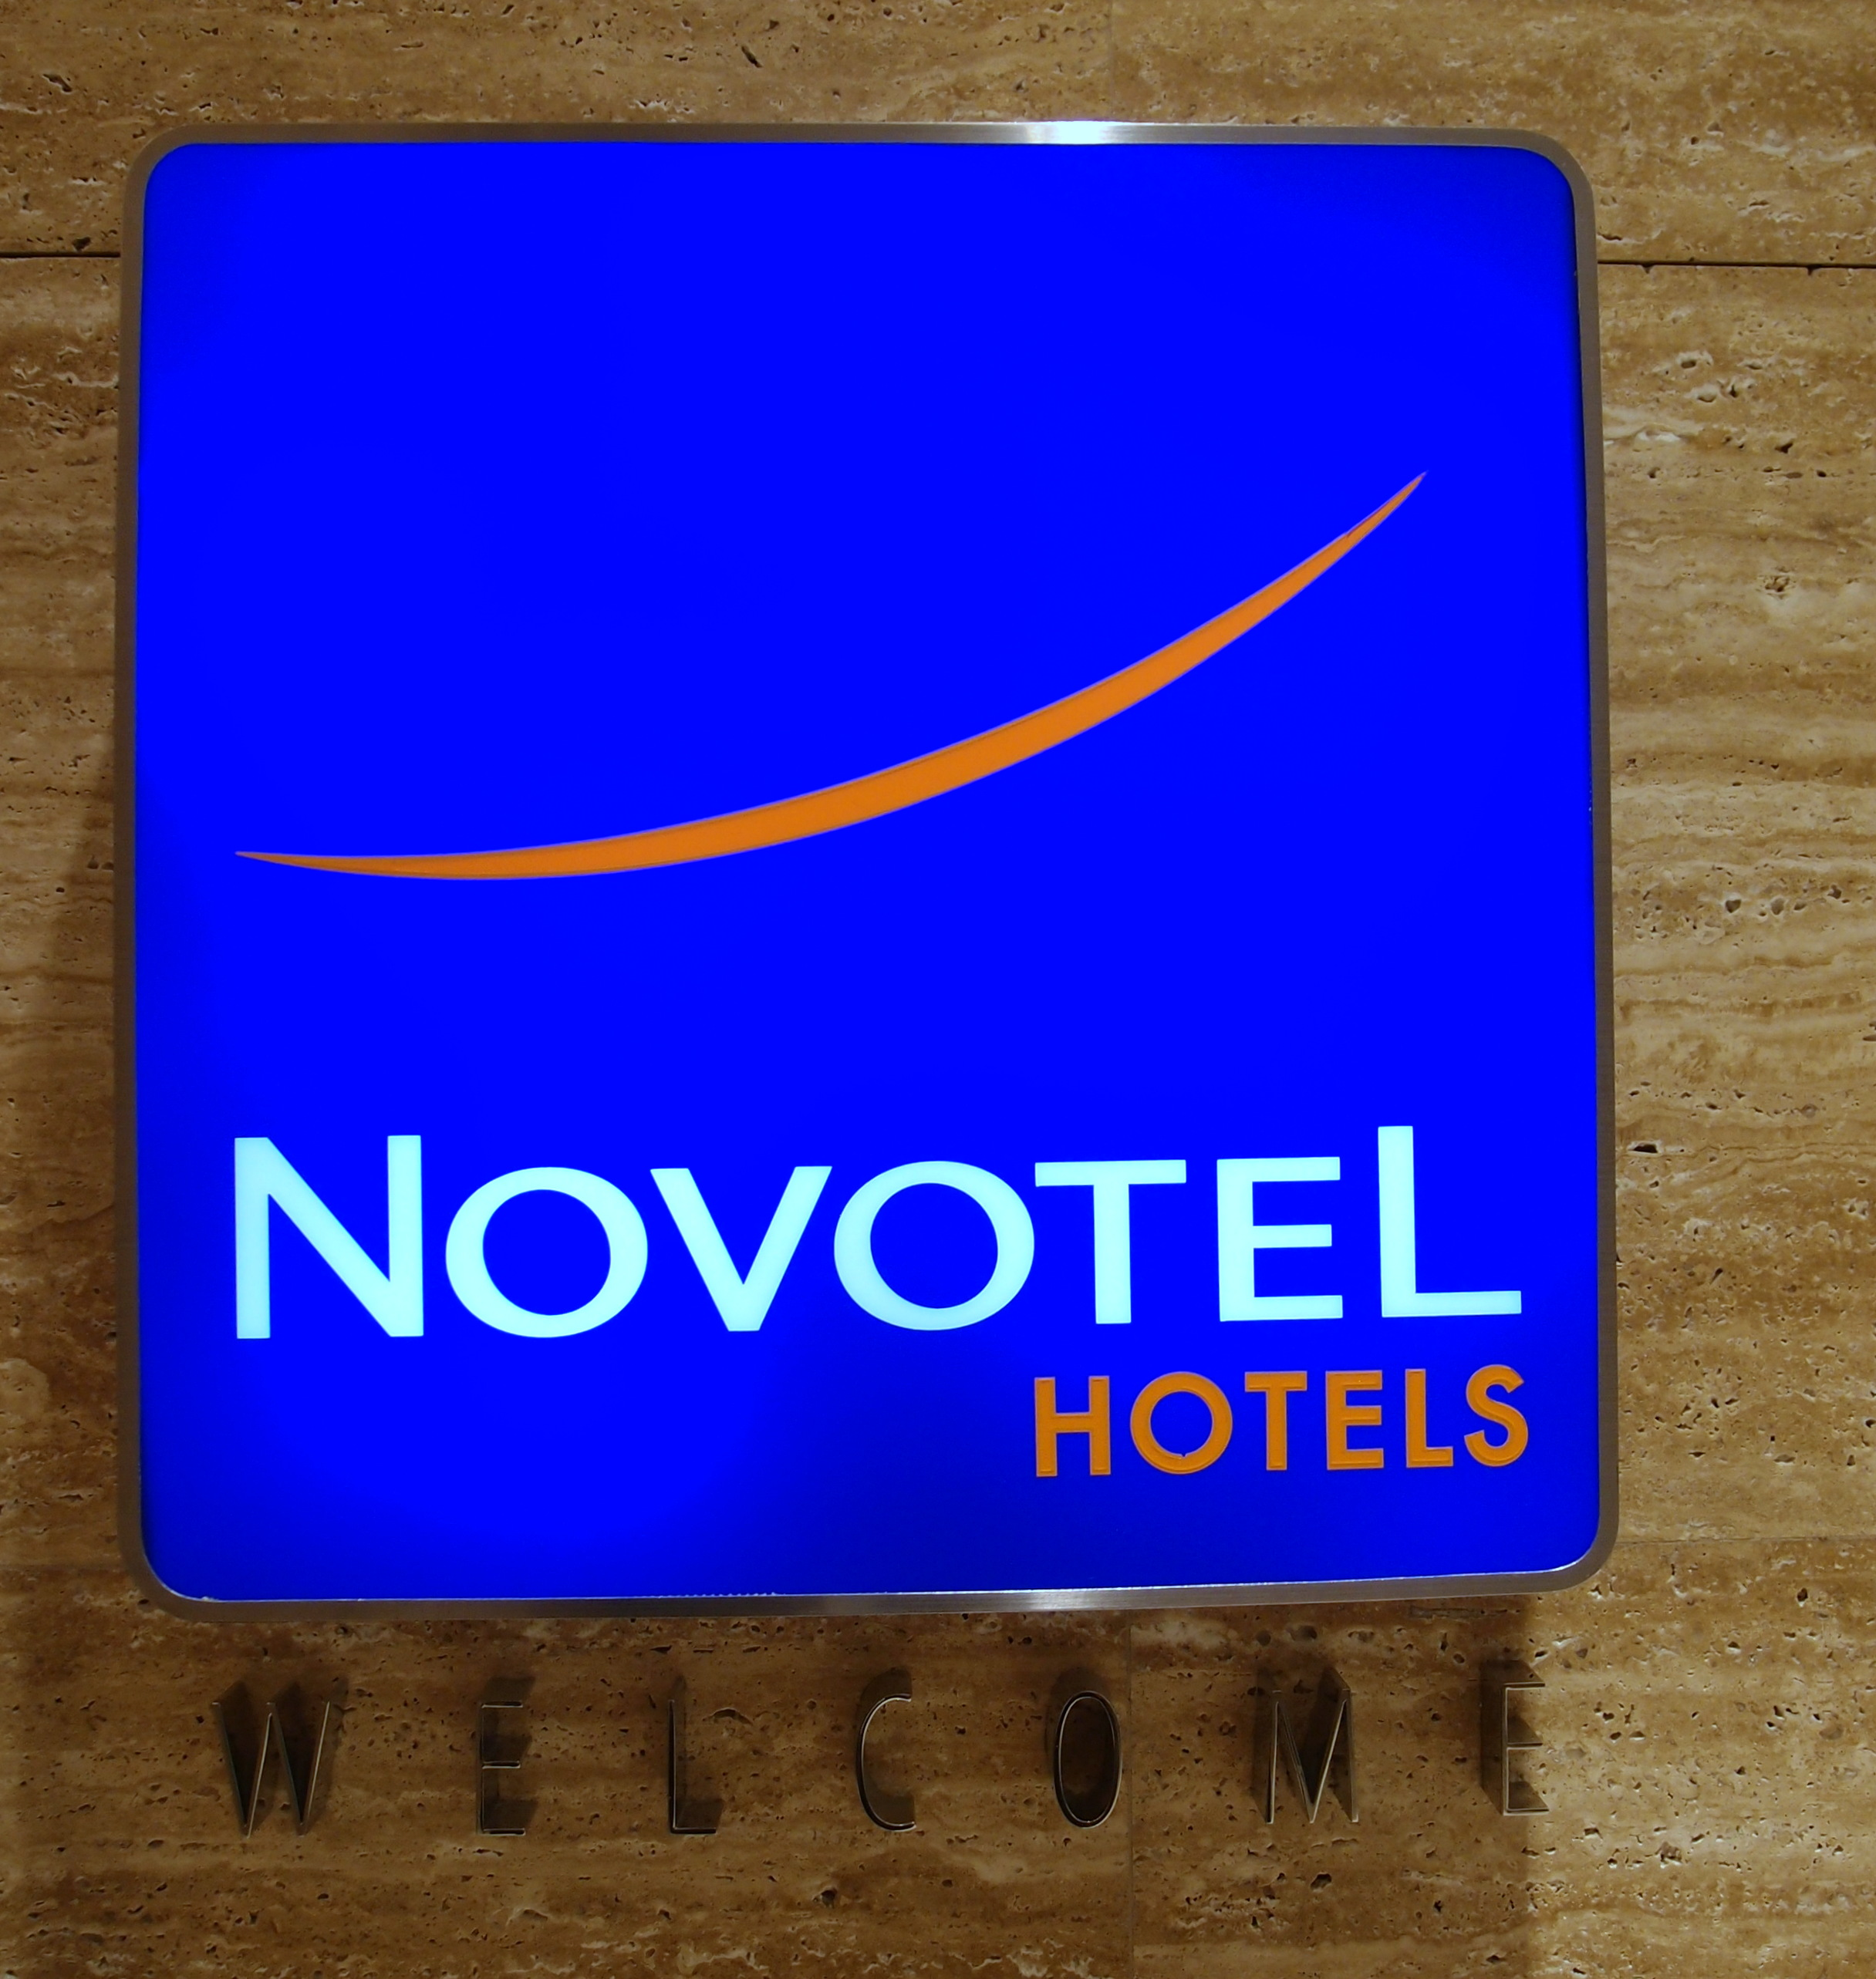 The Novotel at Citygate is pretty good